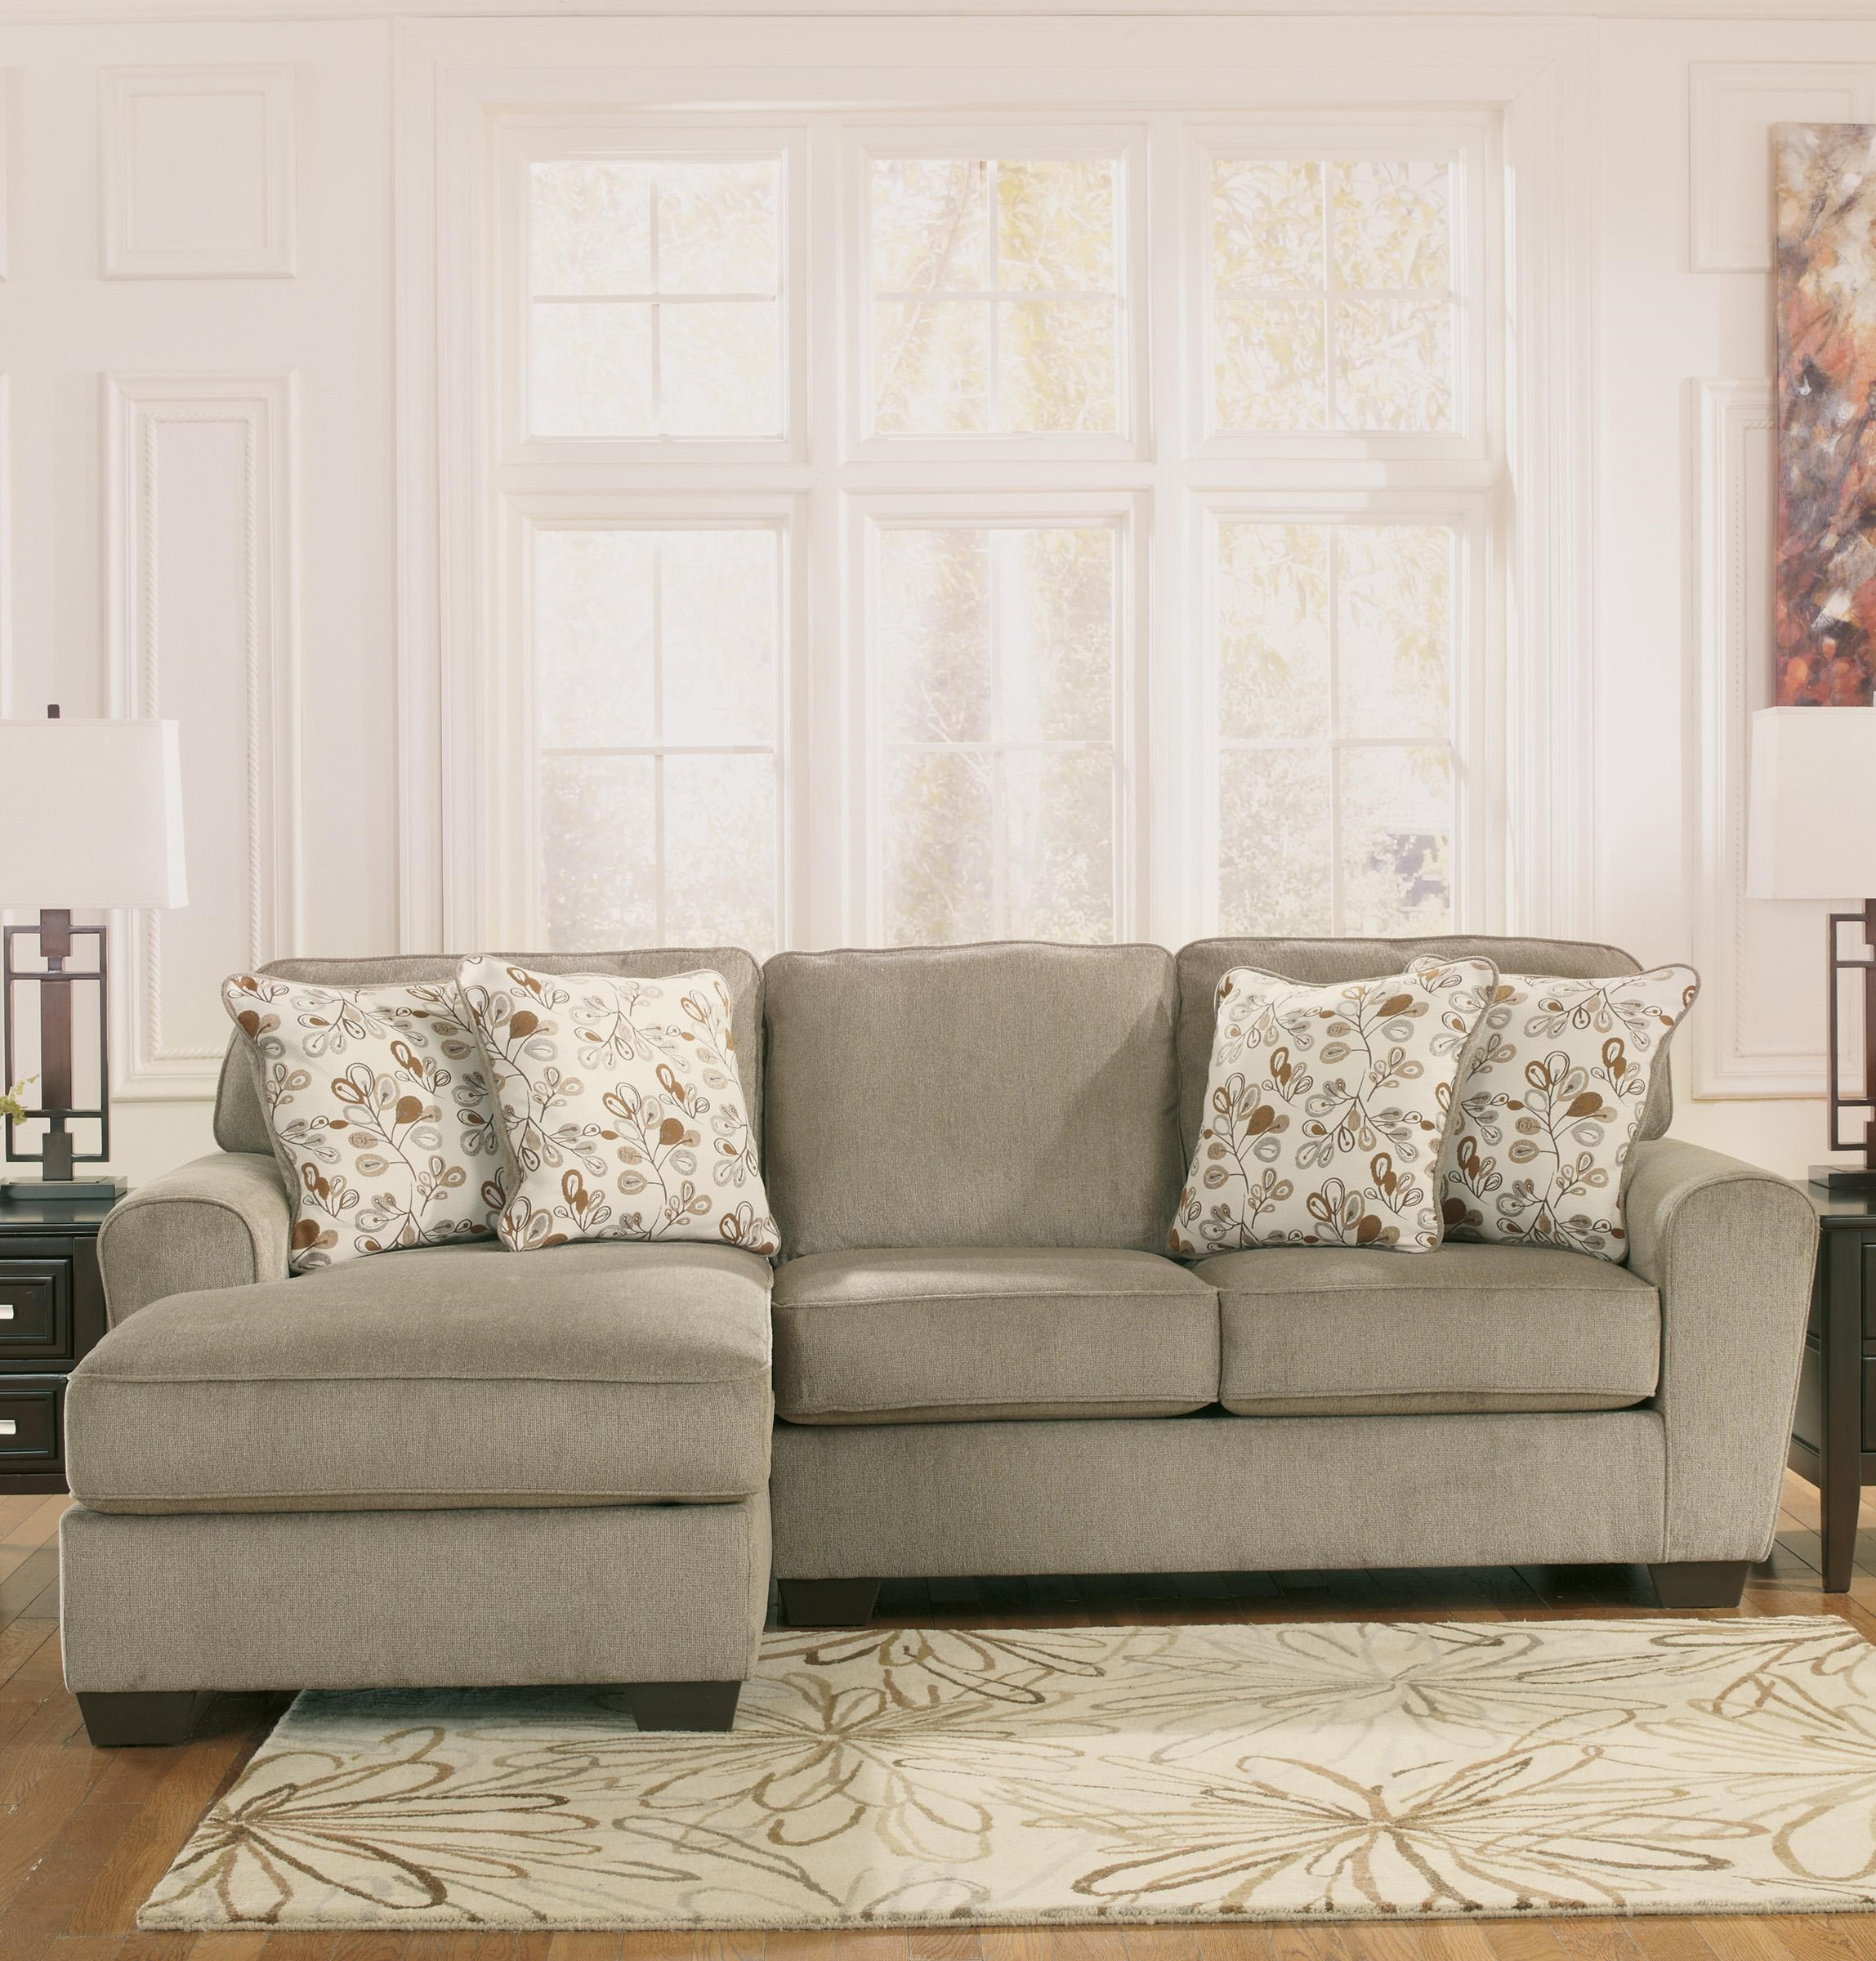 Ashley Furniture Patola Park   Patina 2 Piece Sectional With Left Chaise    Van Hill Furniture   Sofa Sectional